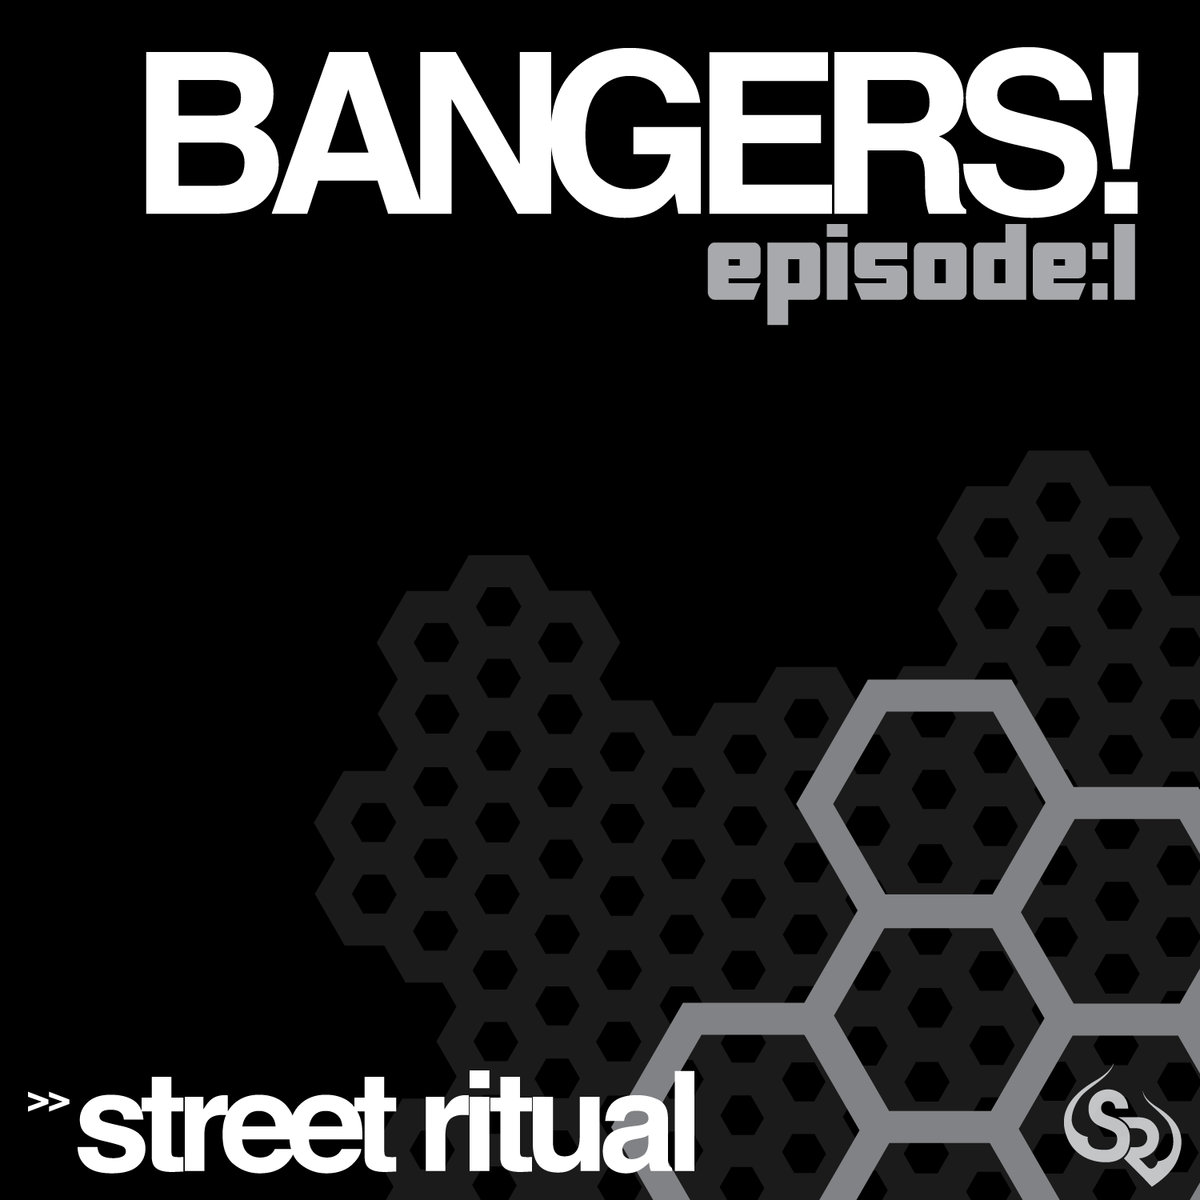 kLL sMTH - Juxtacollision @ 'Various Artists - Bangers! Episode:1' album (bass, electronic)